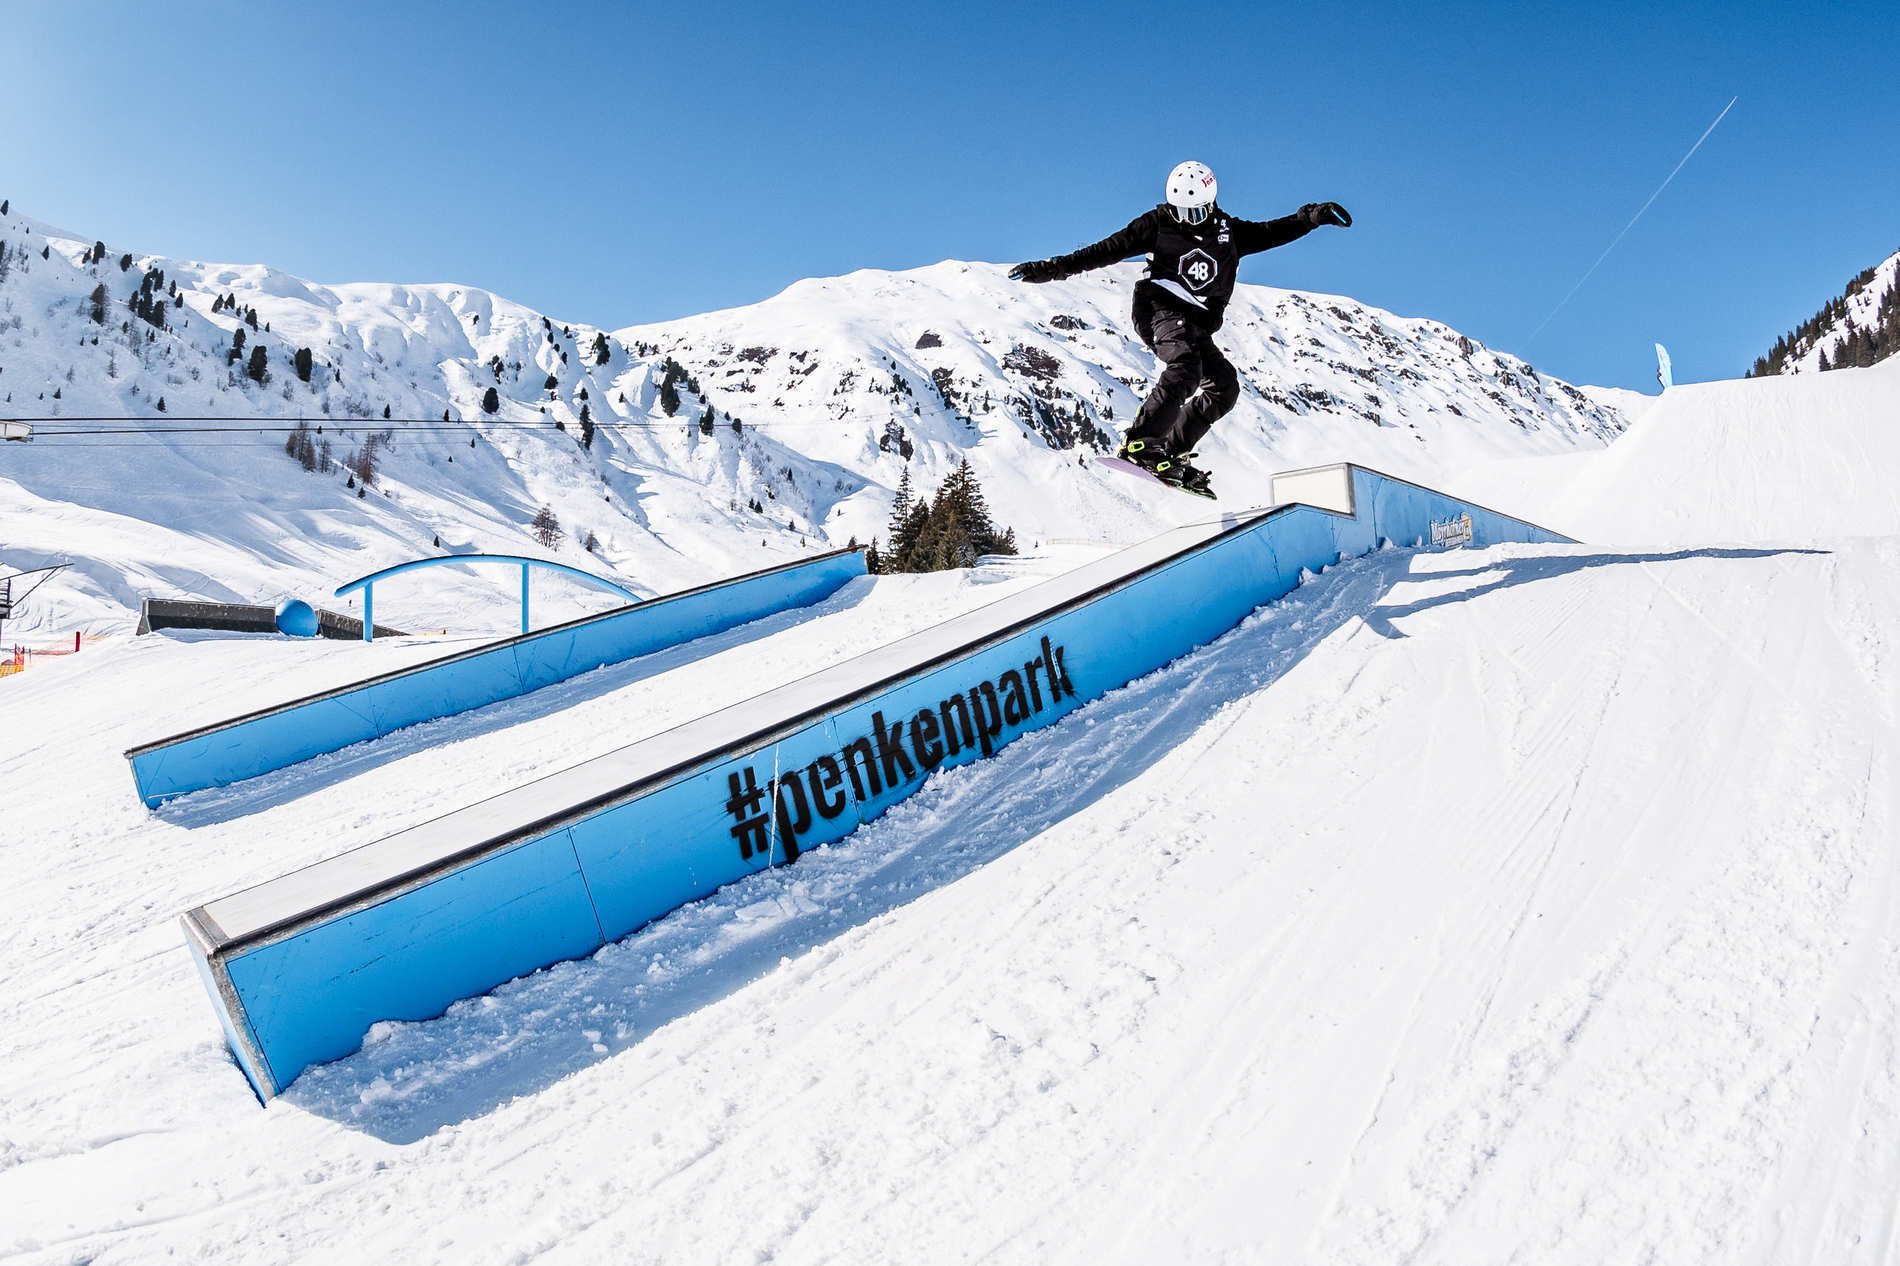 web mayrhofen 23 02 2019 action sb jonny cresswell christian riefenberg qparks 1